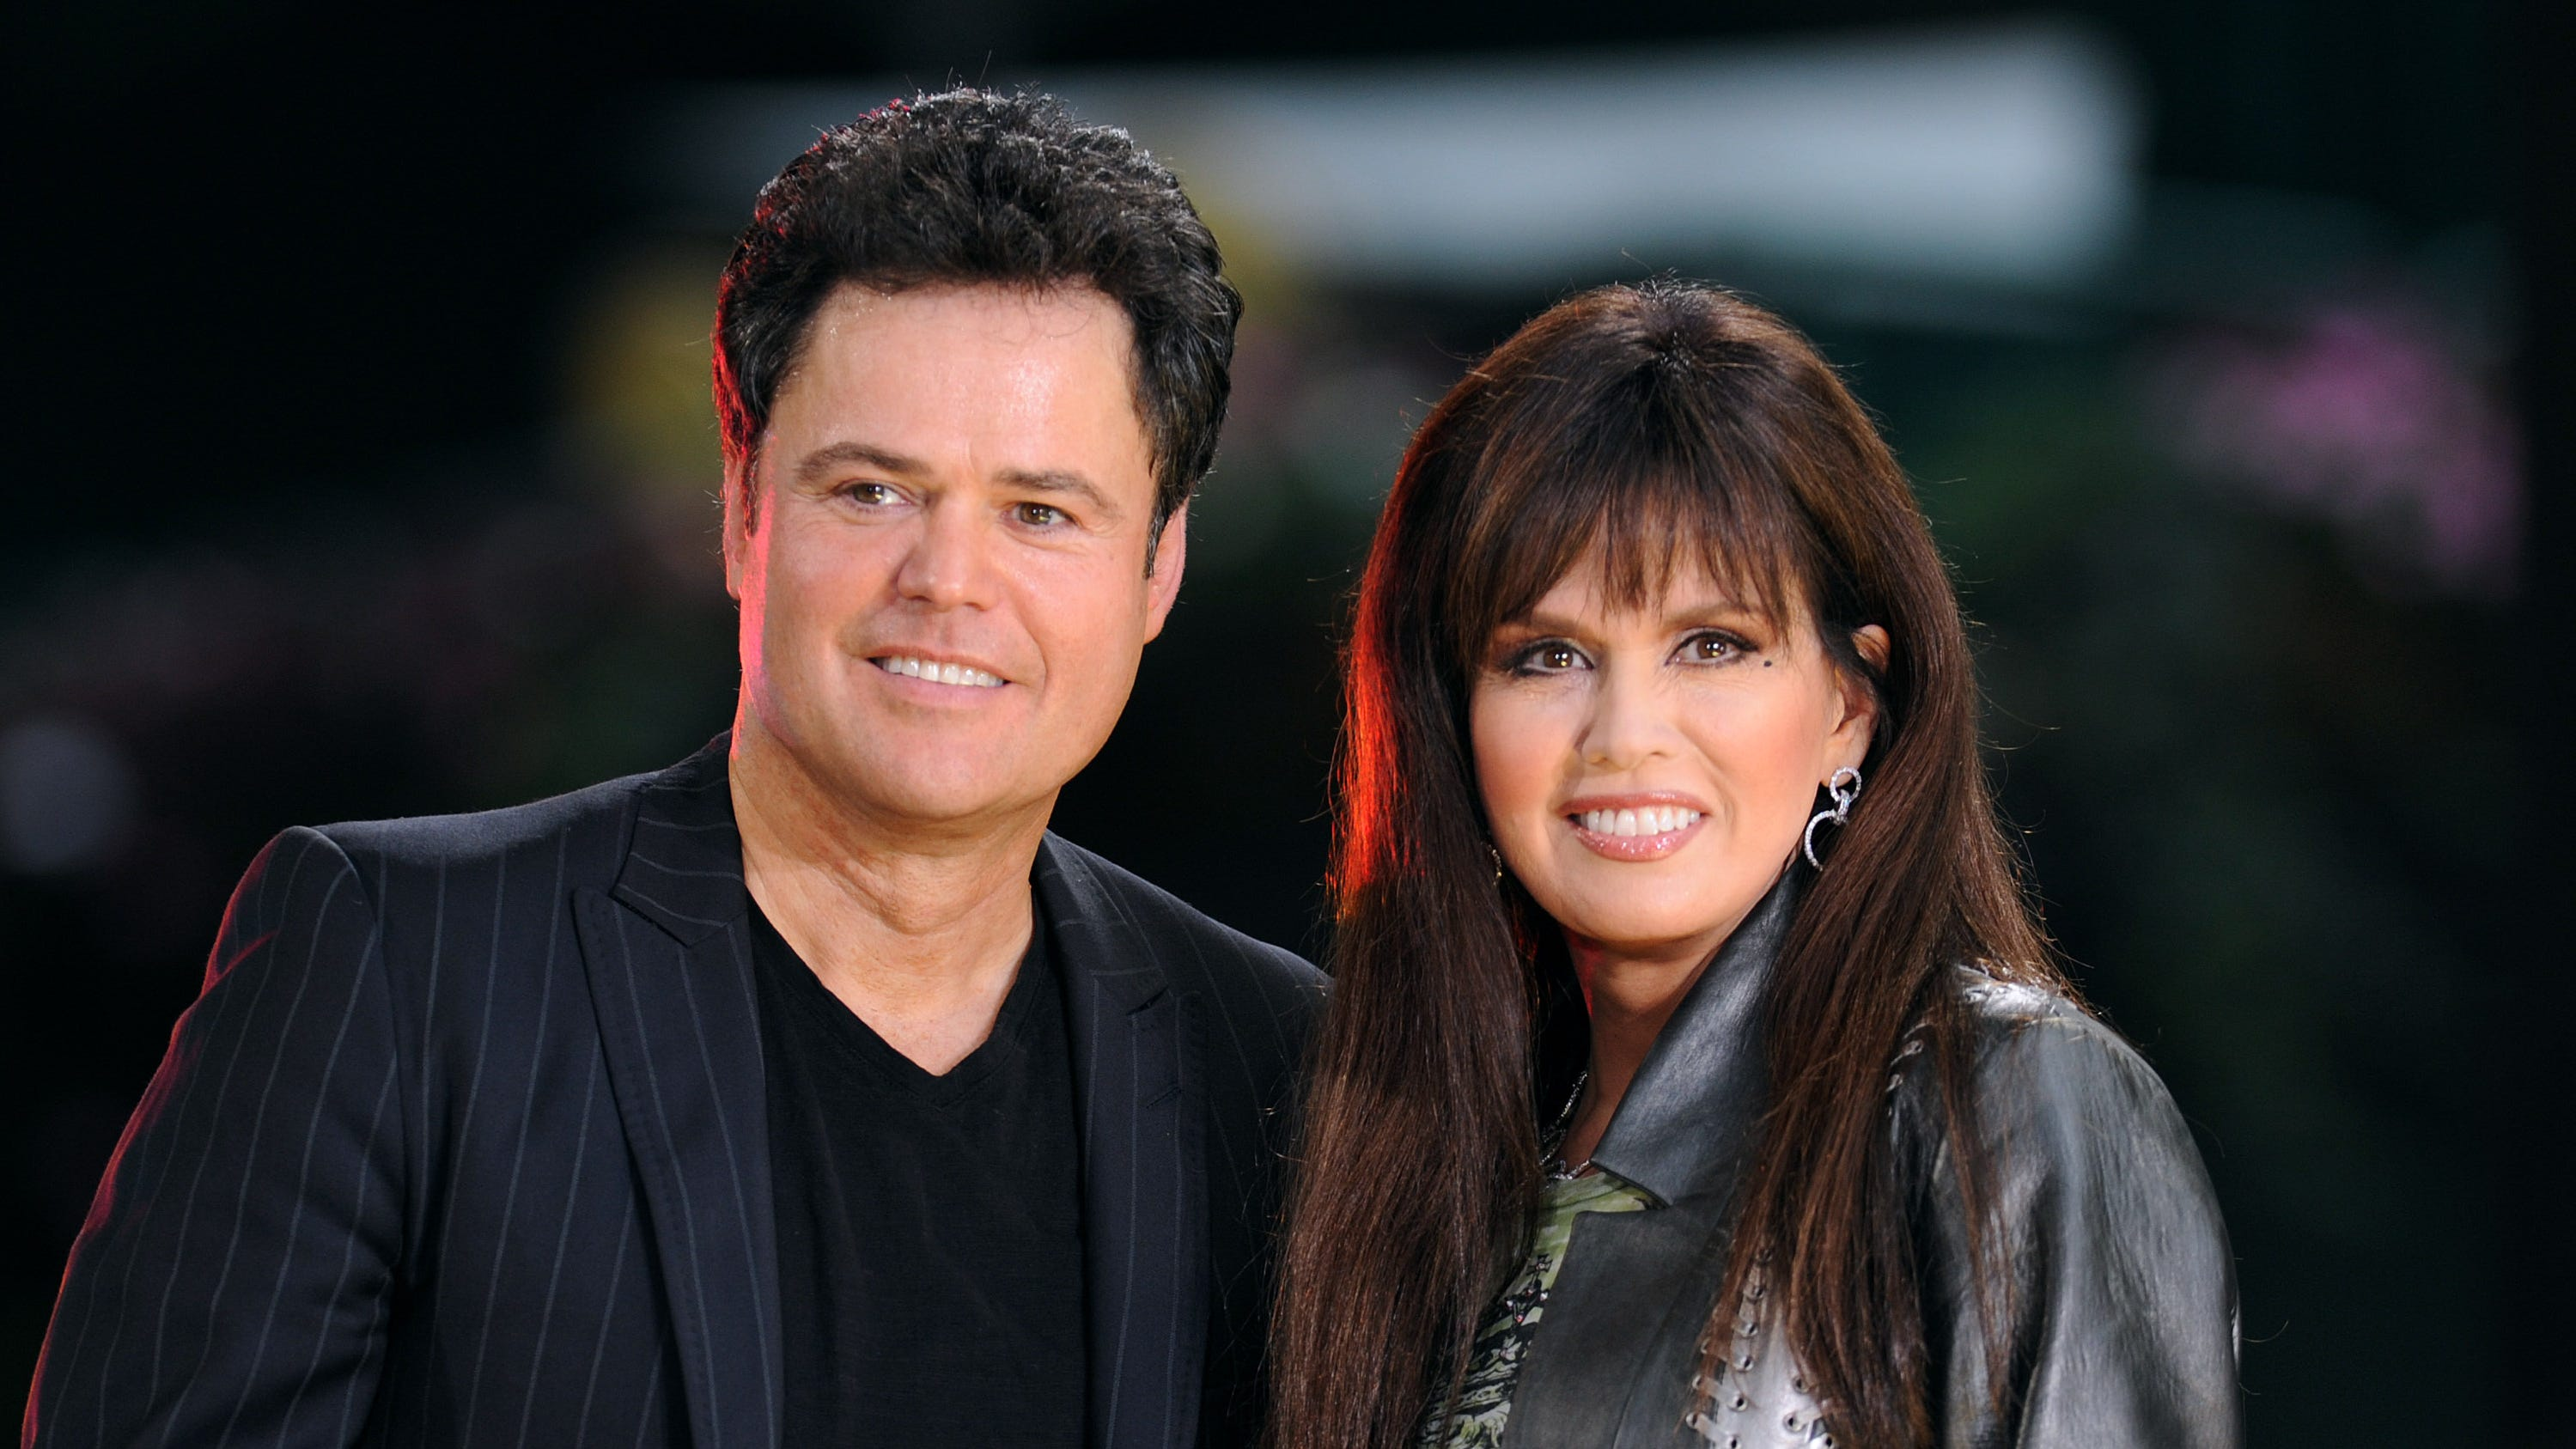 Marie and Donny Osmond fight back tears during last Las Vegas show